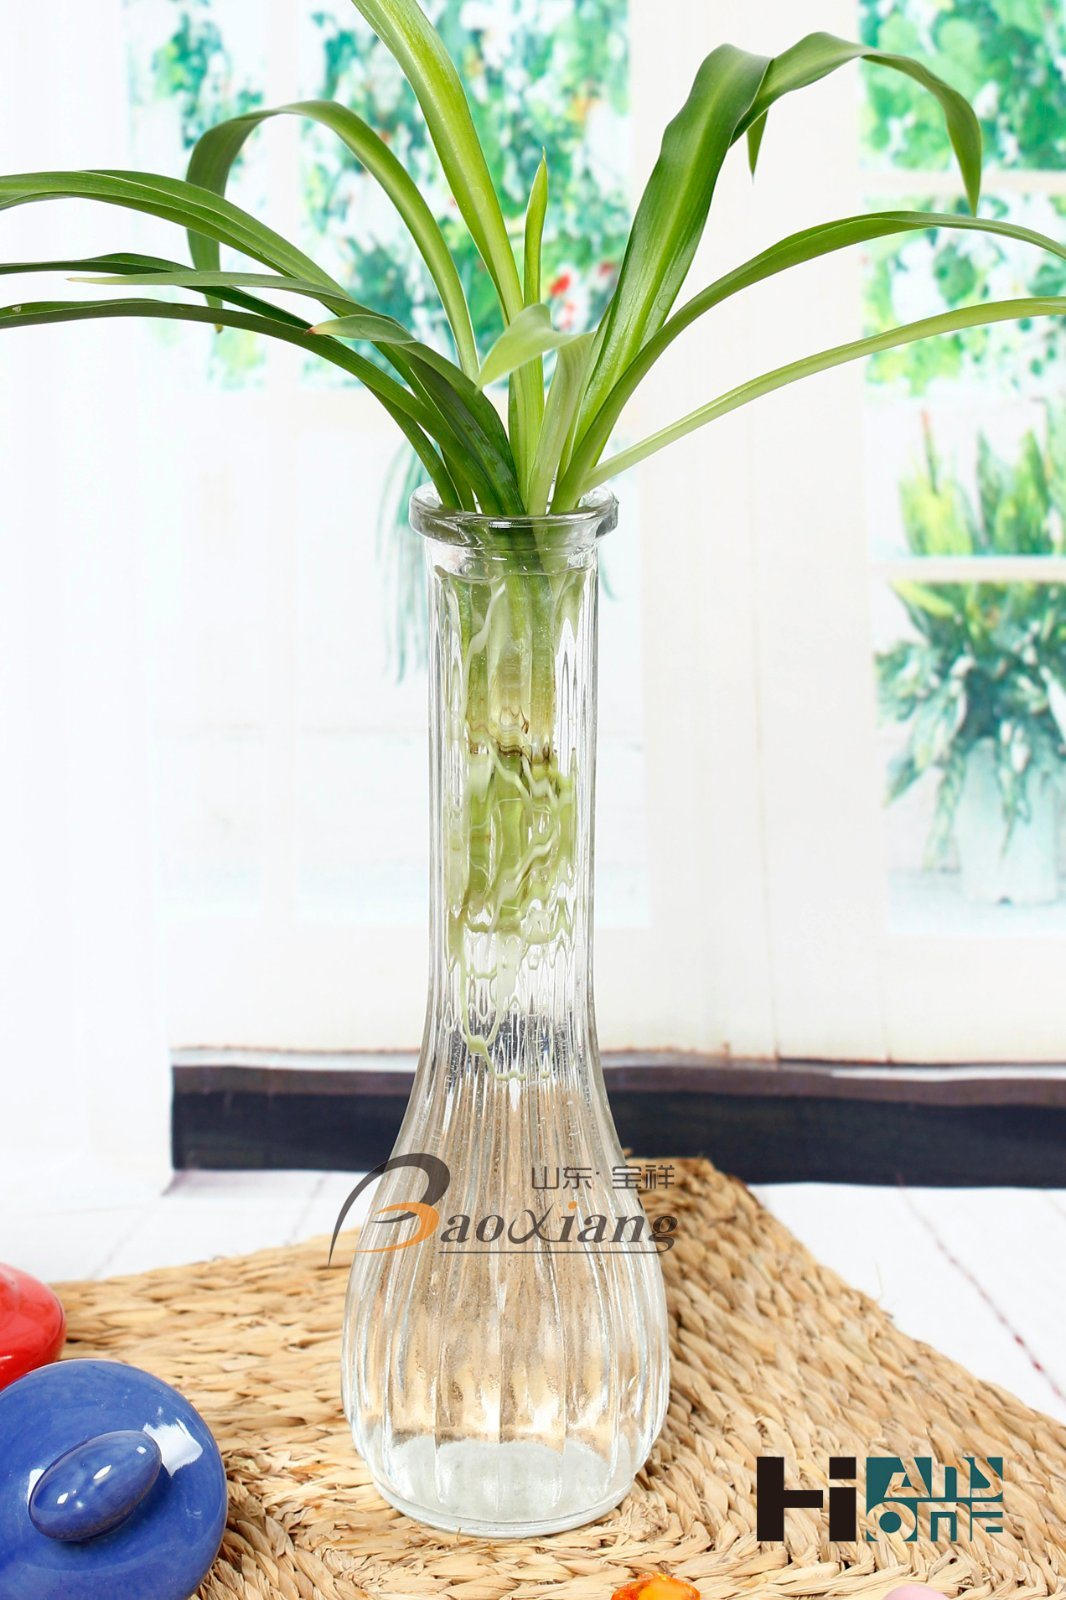 Three Different Characteristics of Glassvase